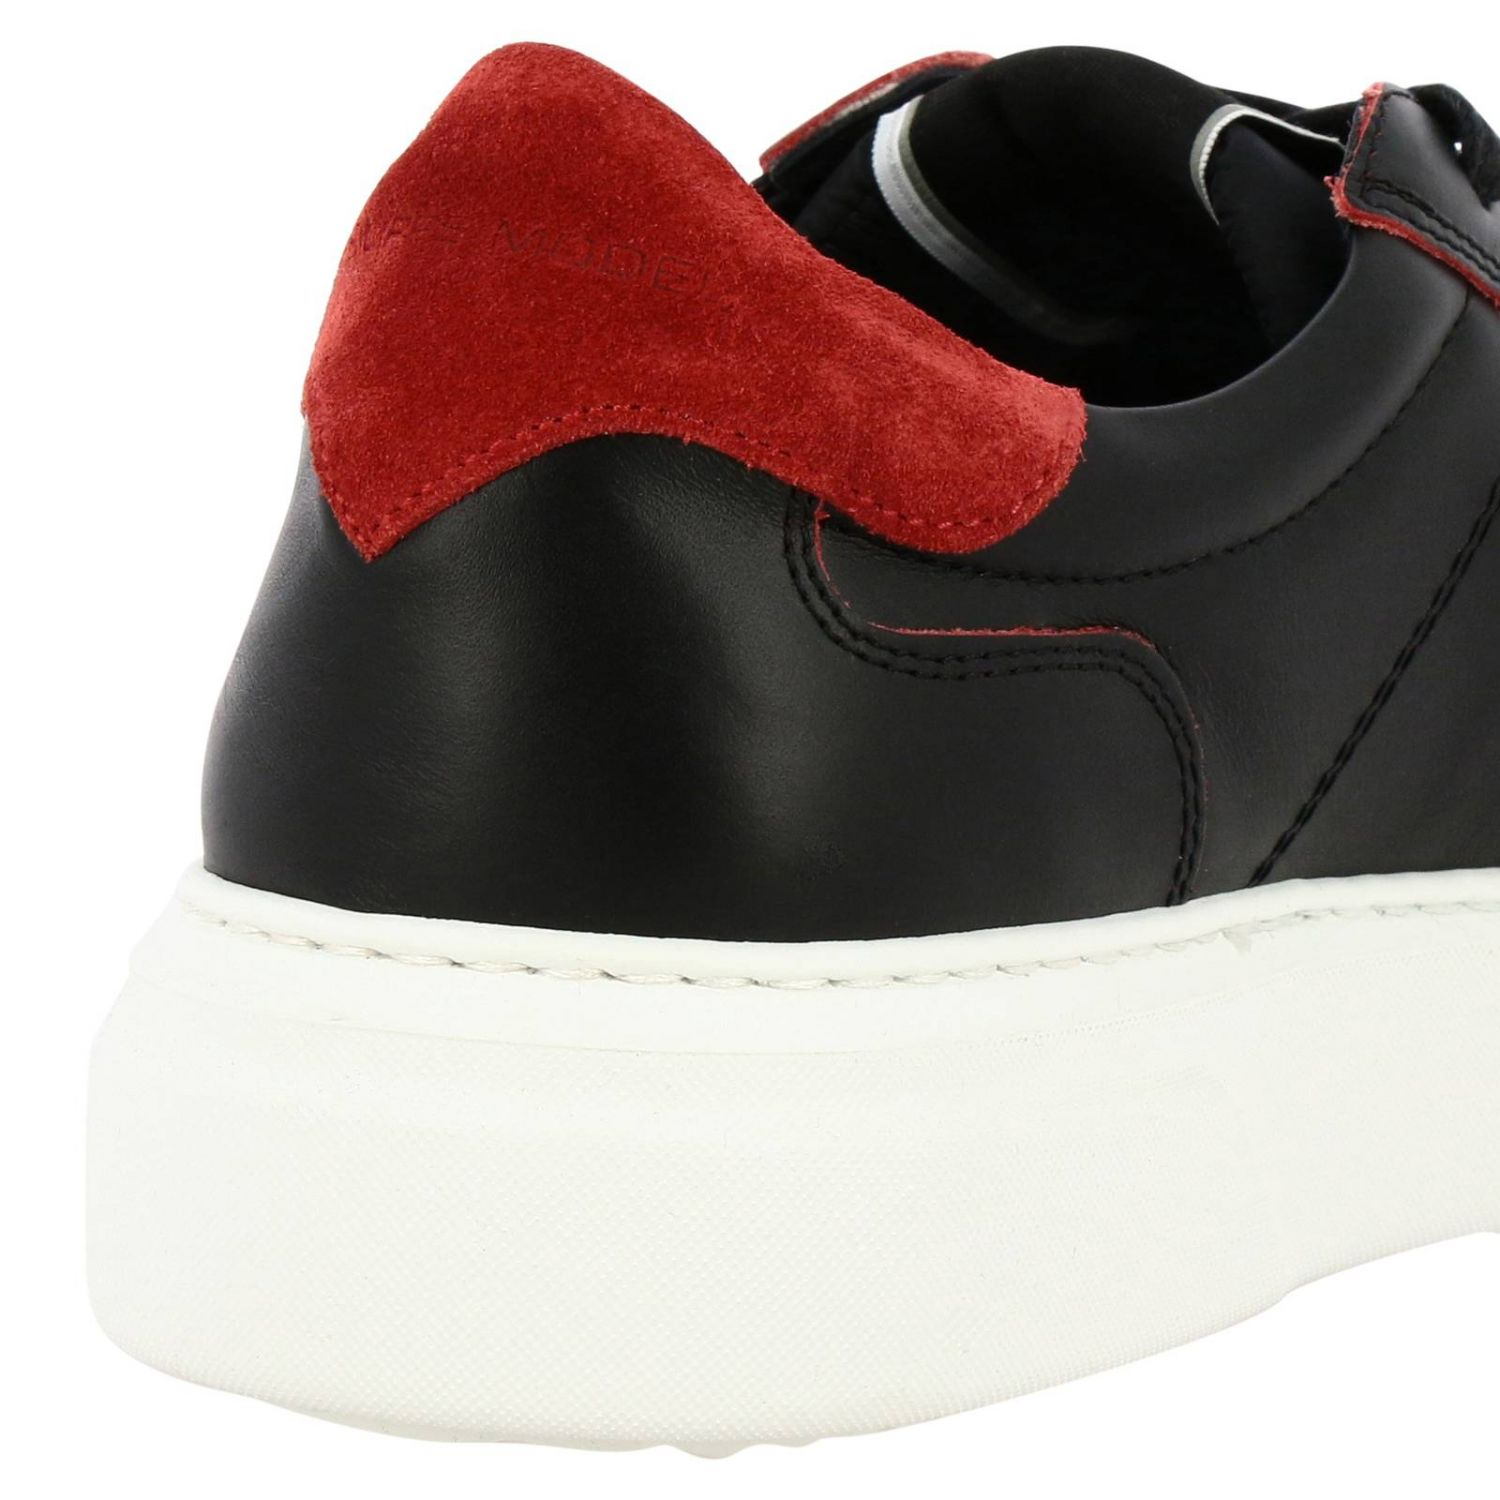 Sneakers Temple Philippe Model stringata in pelle liscia nero 4